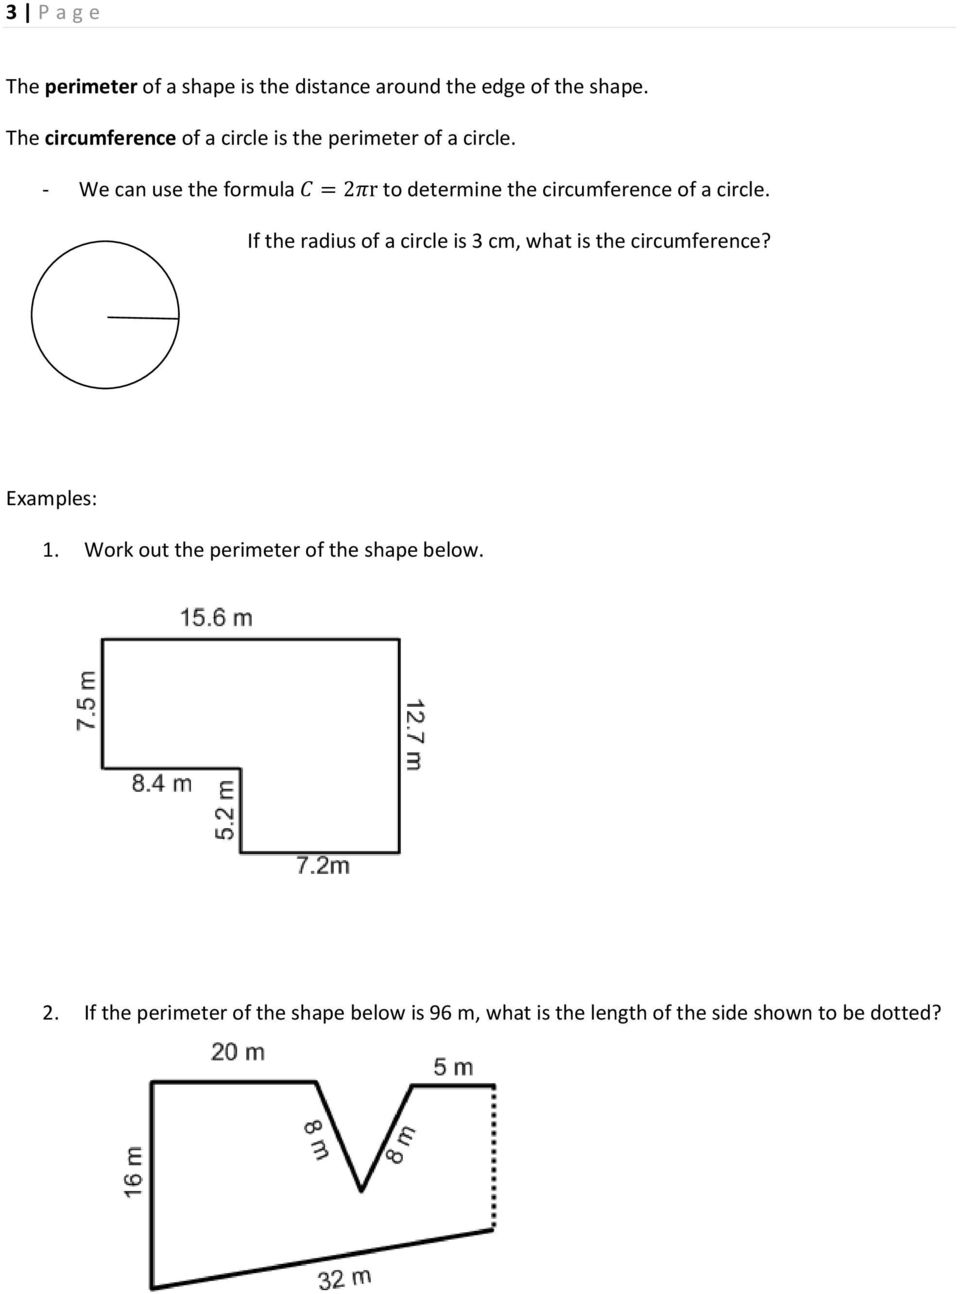 - We can use the formula to determine the circumference of a circle.